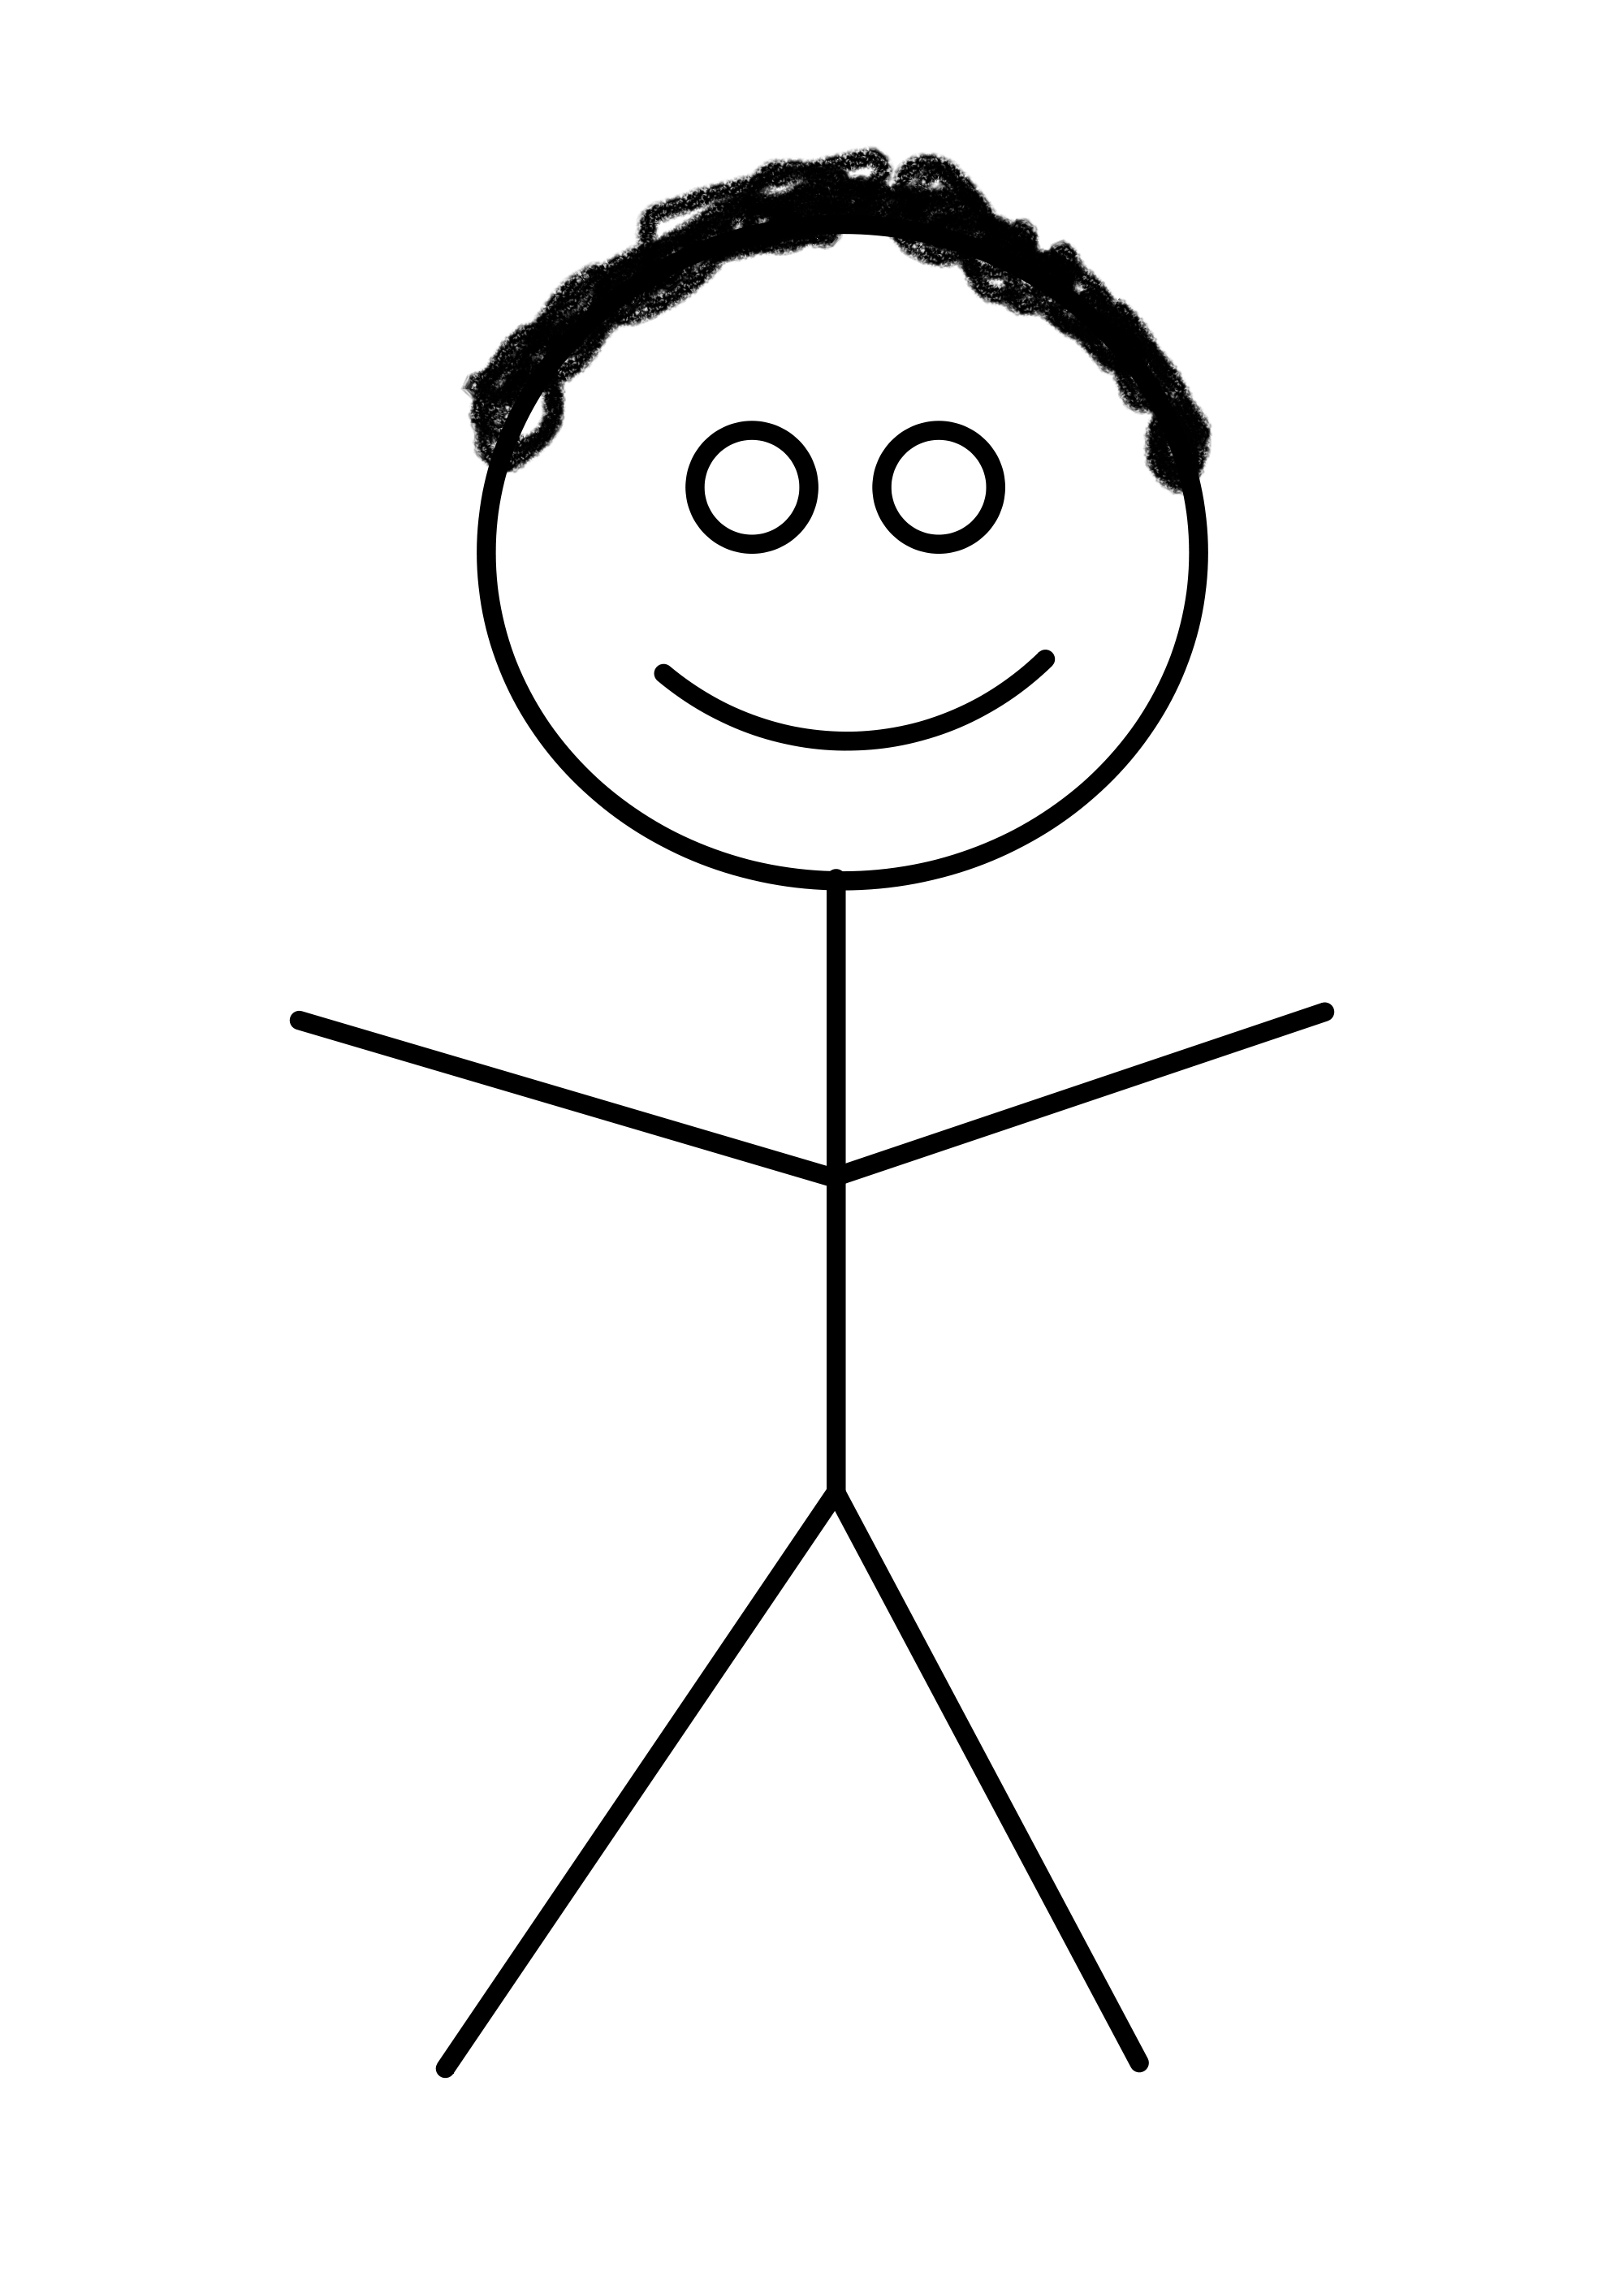 PNG HD Of Stick Figures - 130056